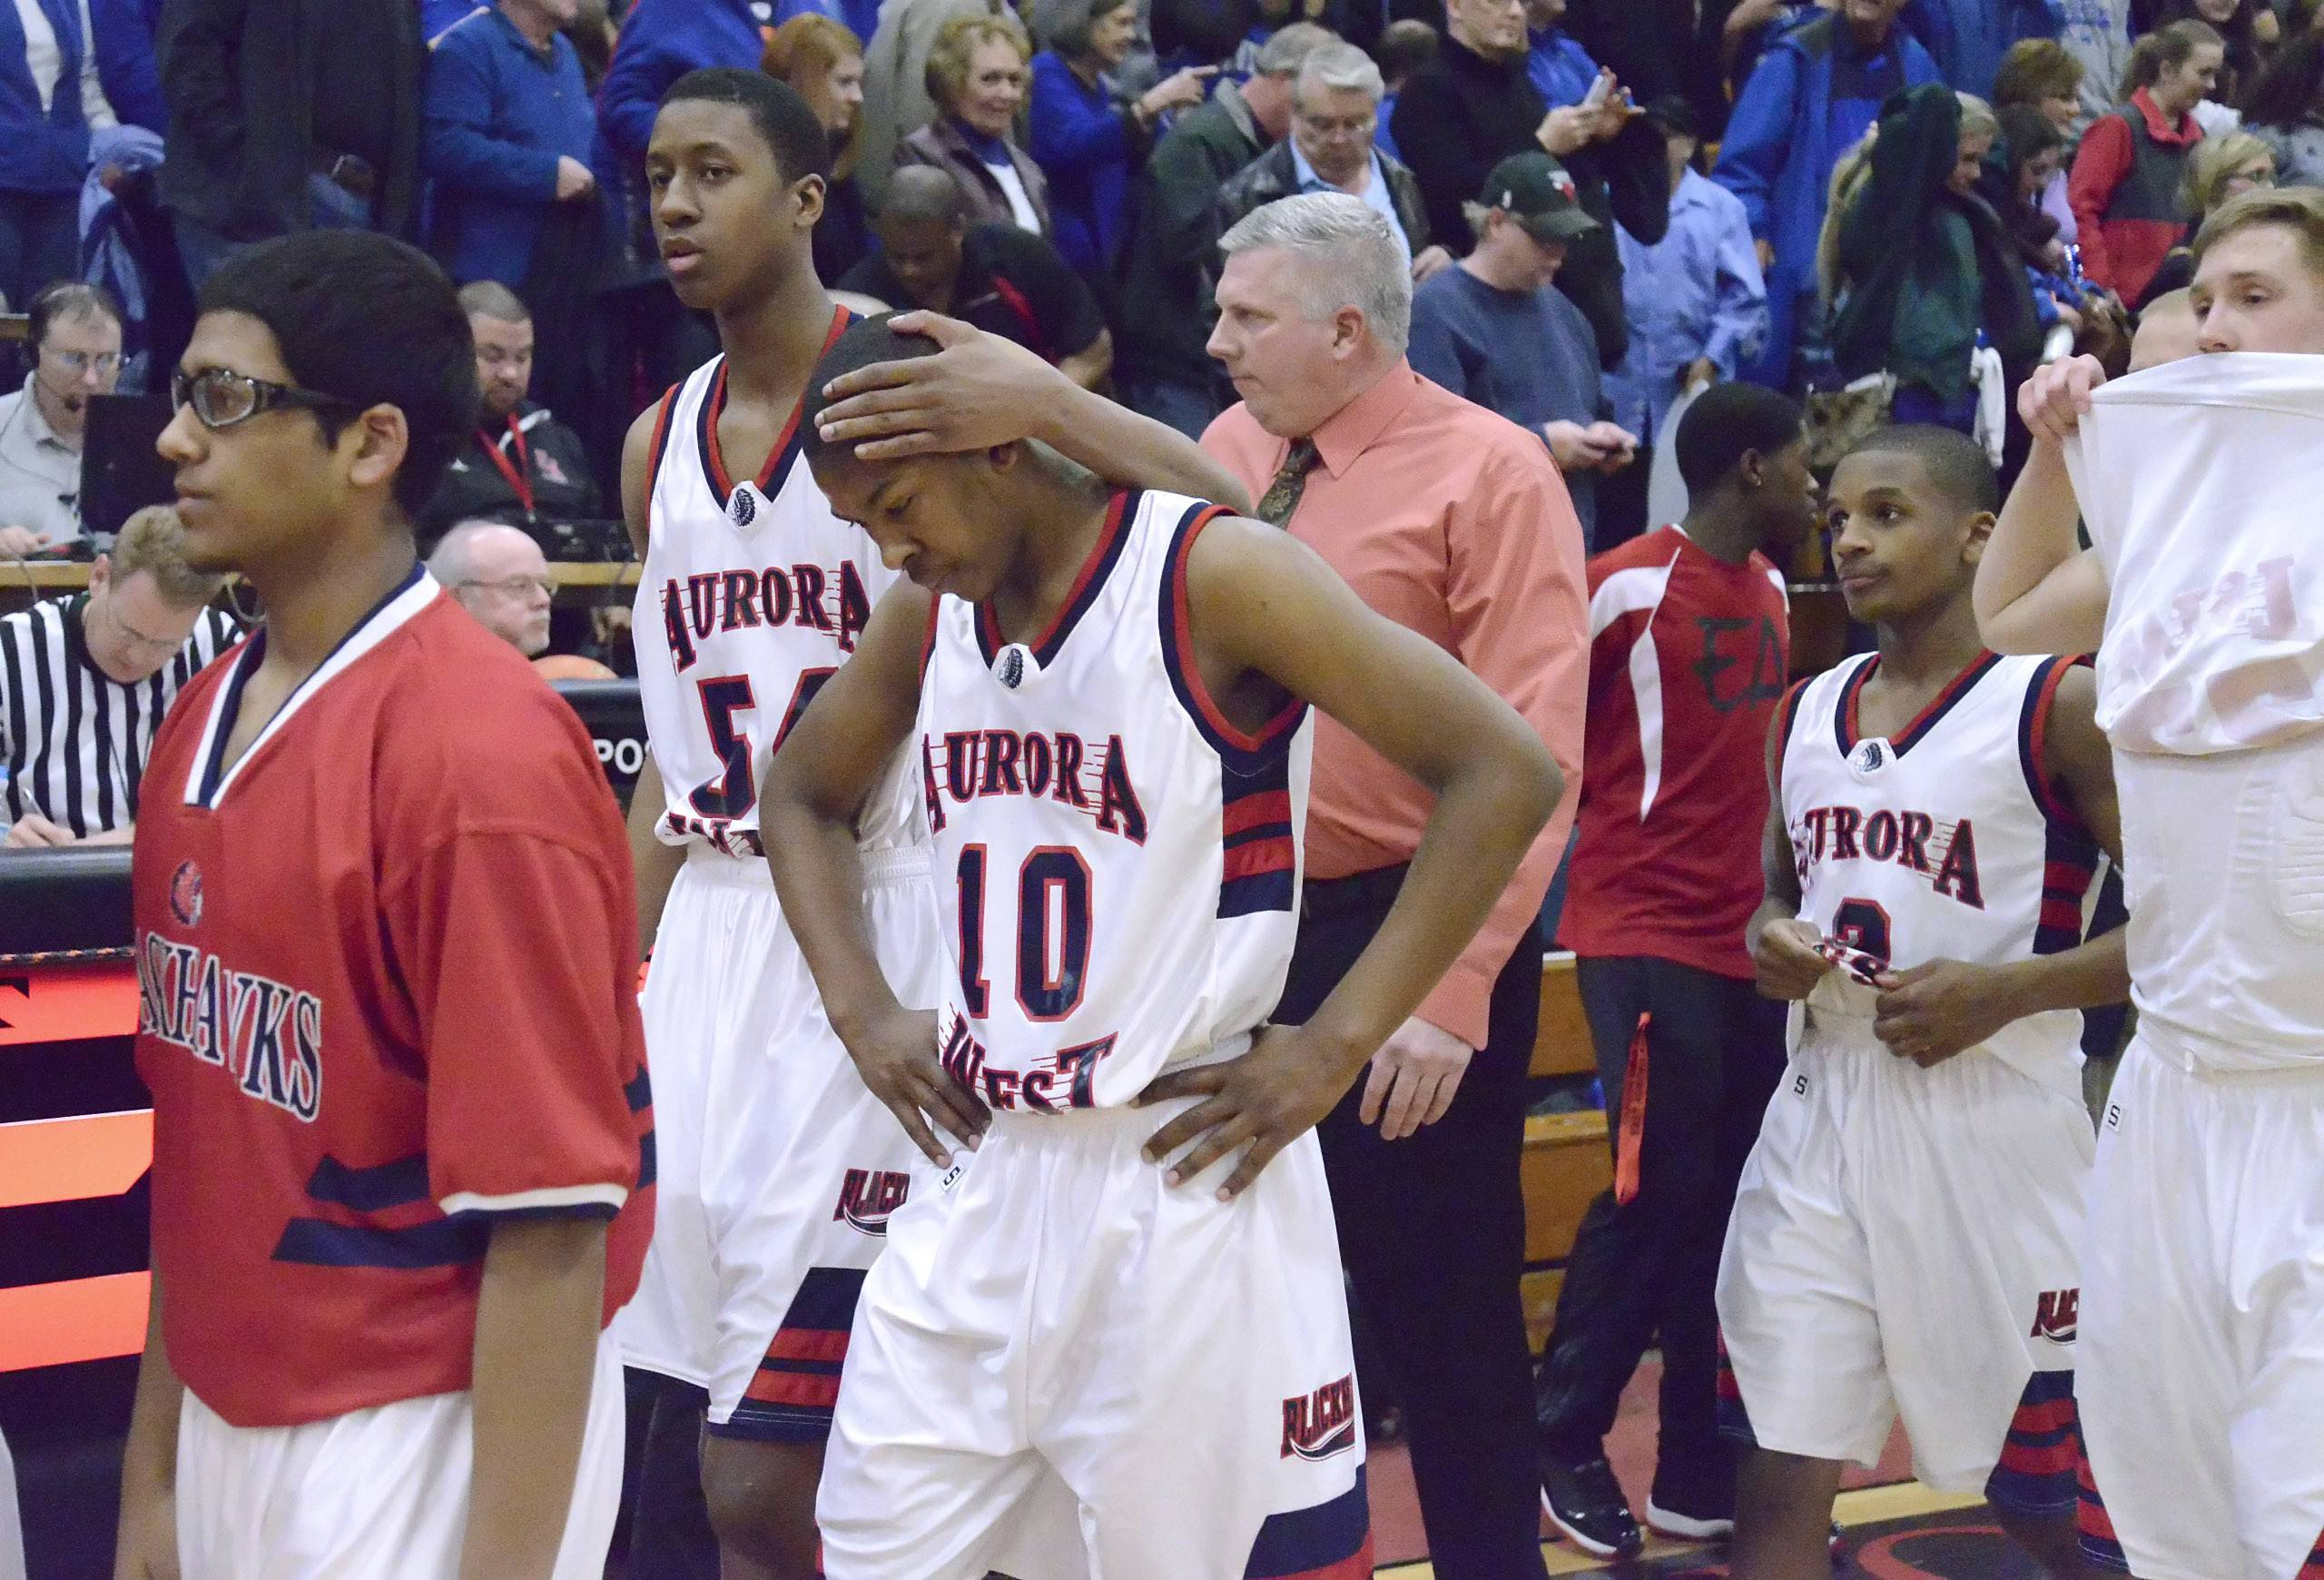 West Aurora's Carleton Williams, left, holds the head of teammate Jontrell Walker as they exit the court.